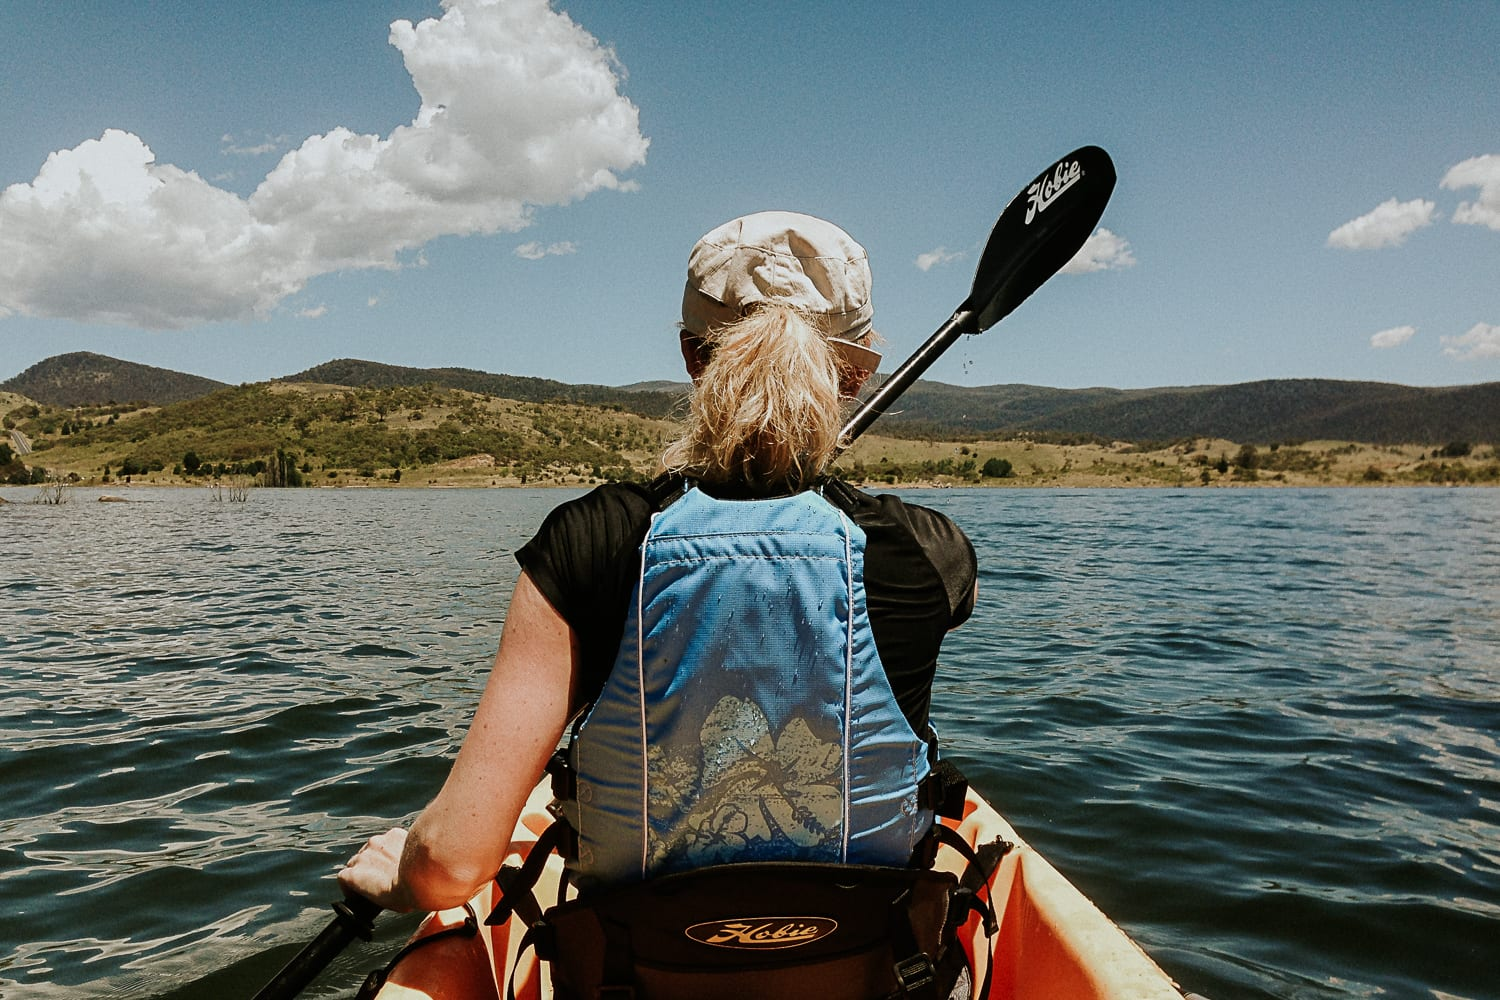 Adventures for a modern bride an include a range of outdoor fun like Kayaking